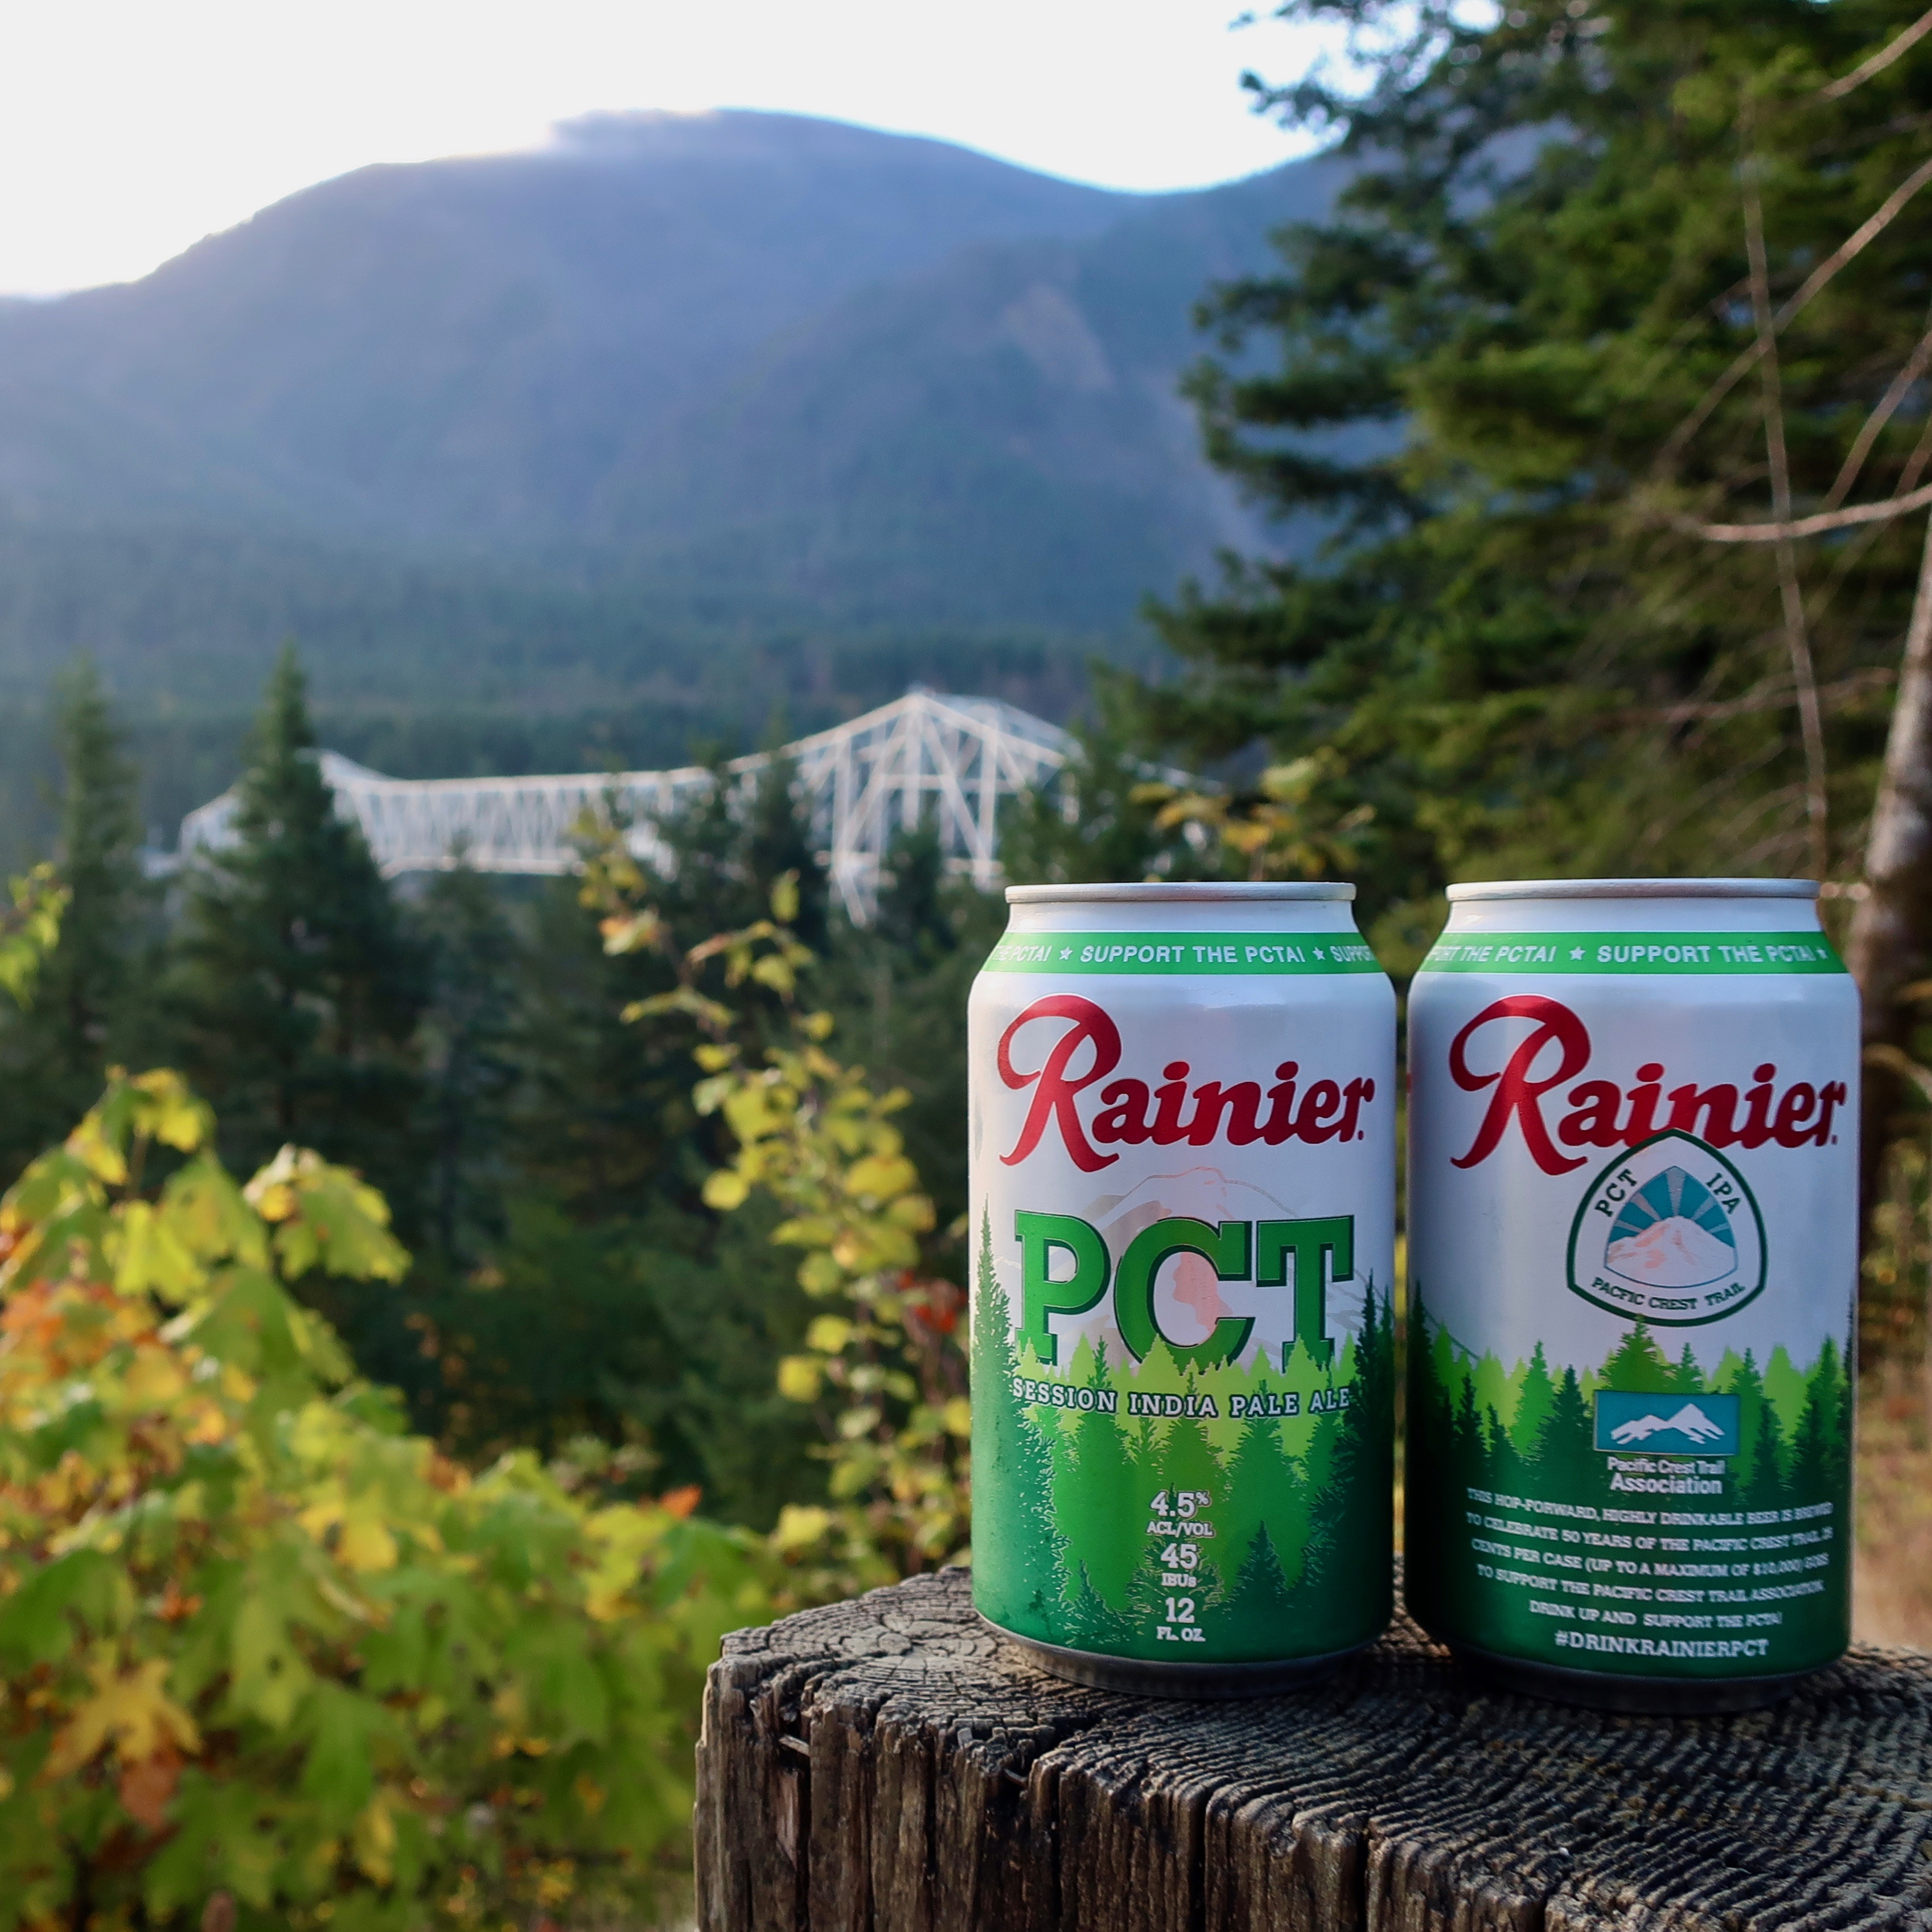 The full can image of the new Rainier PCT Session IPA along the PCT Trail in Washington State.